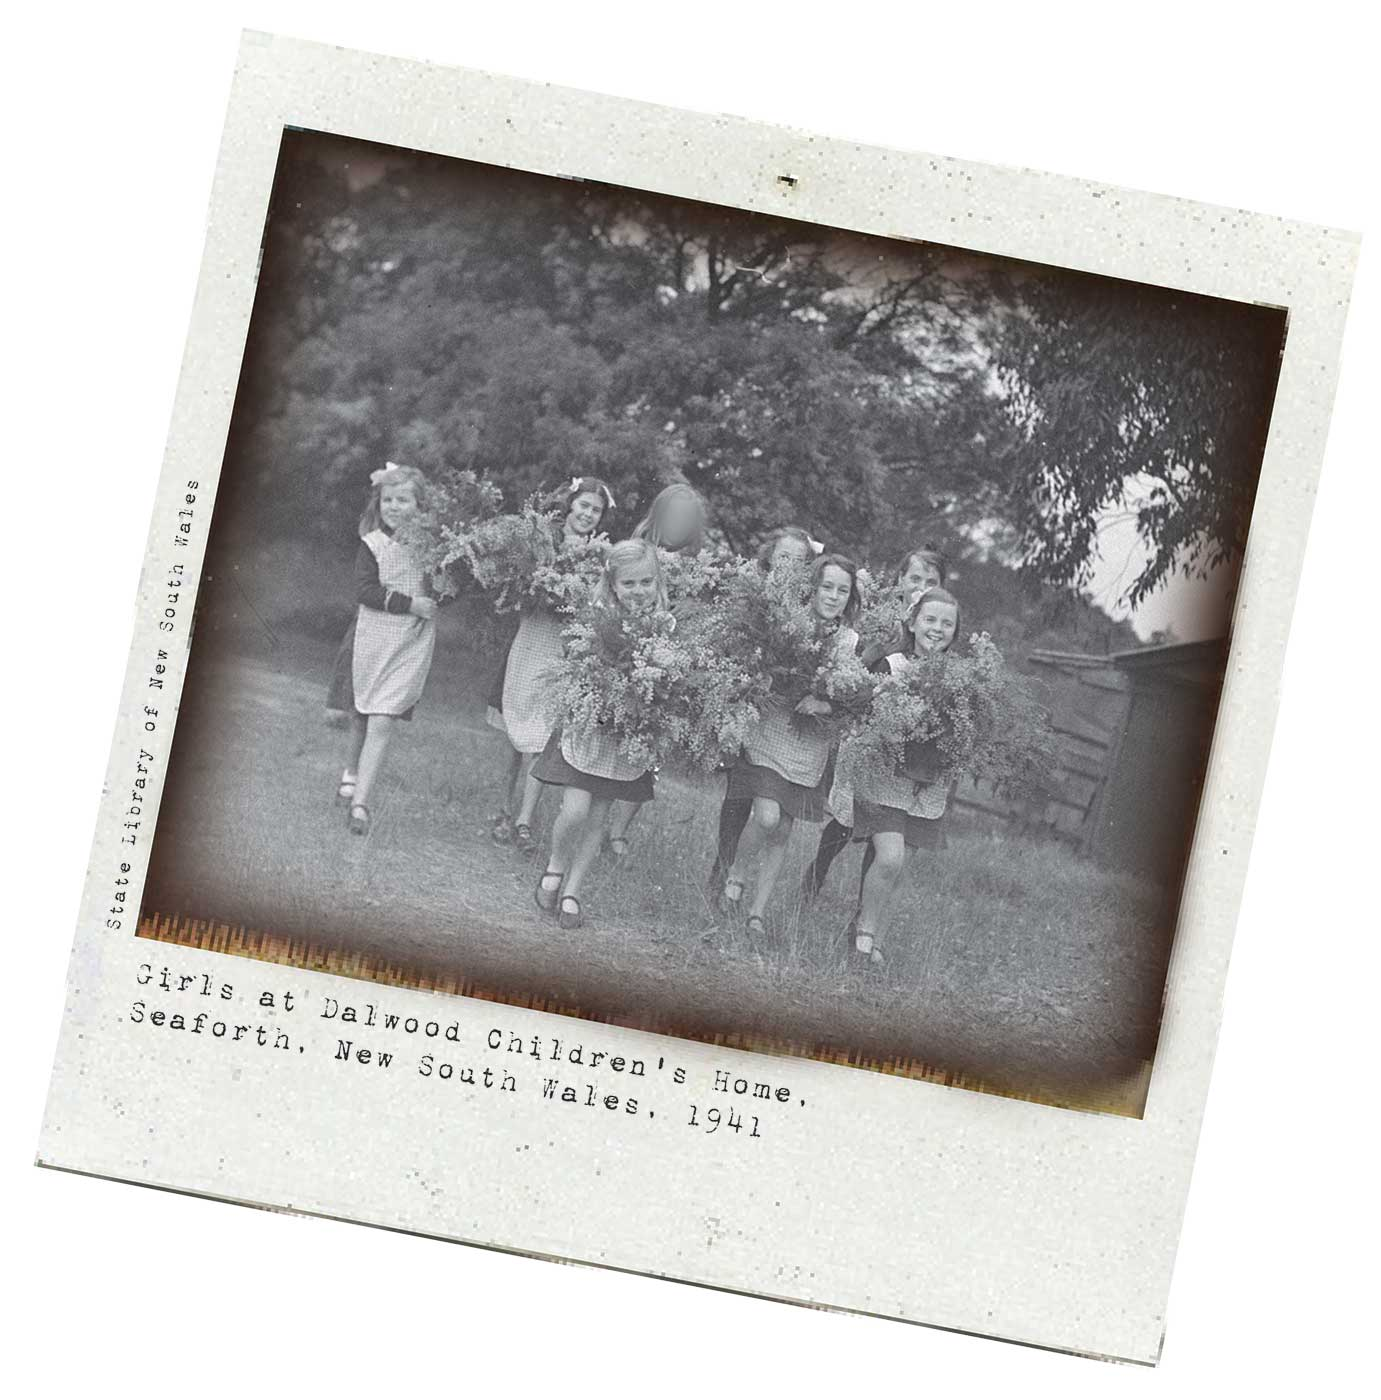 A black and white Polaroid photograph of several young girls carrying large sprays of flowers. The photograph has been taken outside with tall bushes and a building visible in the background.  The girls are walking towards the camera and are smiling. They are dressed alike in long-sleeved above knee dresses covered by lighter coloured checked aprons, the same style shoes, and ribbons in their hair.  Typewritten text underneath reads: 'Girls at Dalwood Children's Home. Seaforth. New South Wales, 1941'. Smaller text, on the left-hand side of the image, in a vertical direction, reads: 'State Library of New South Wales'. - click to view larger image